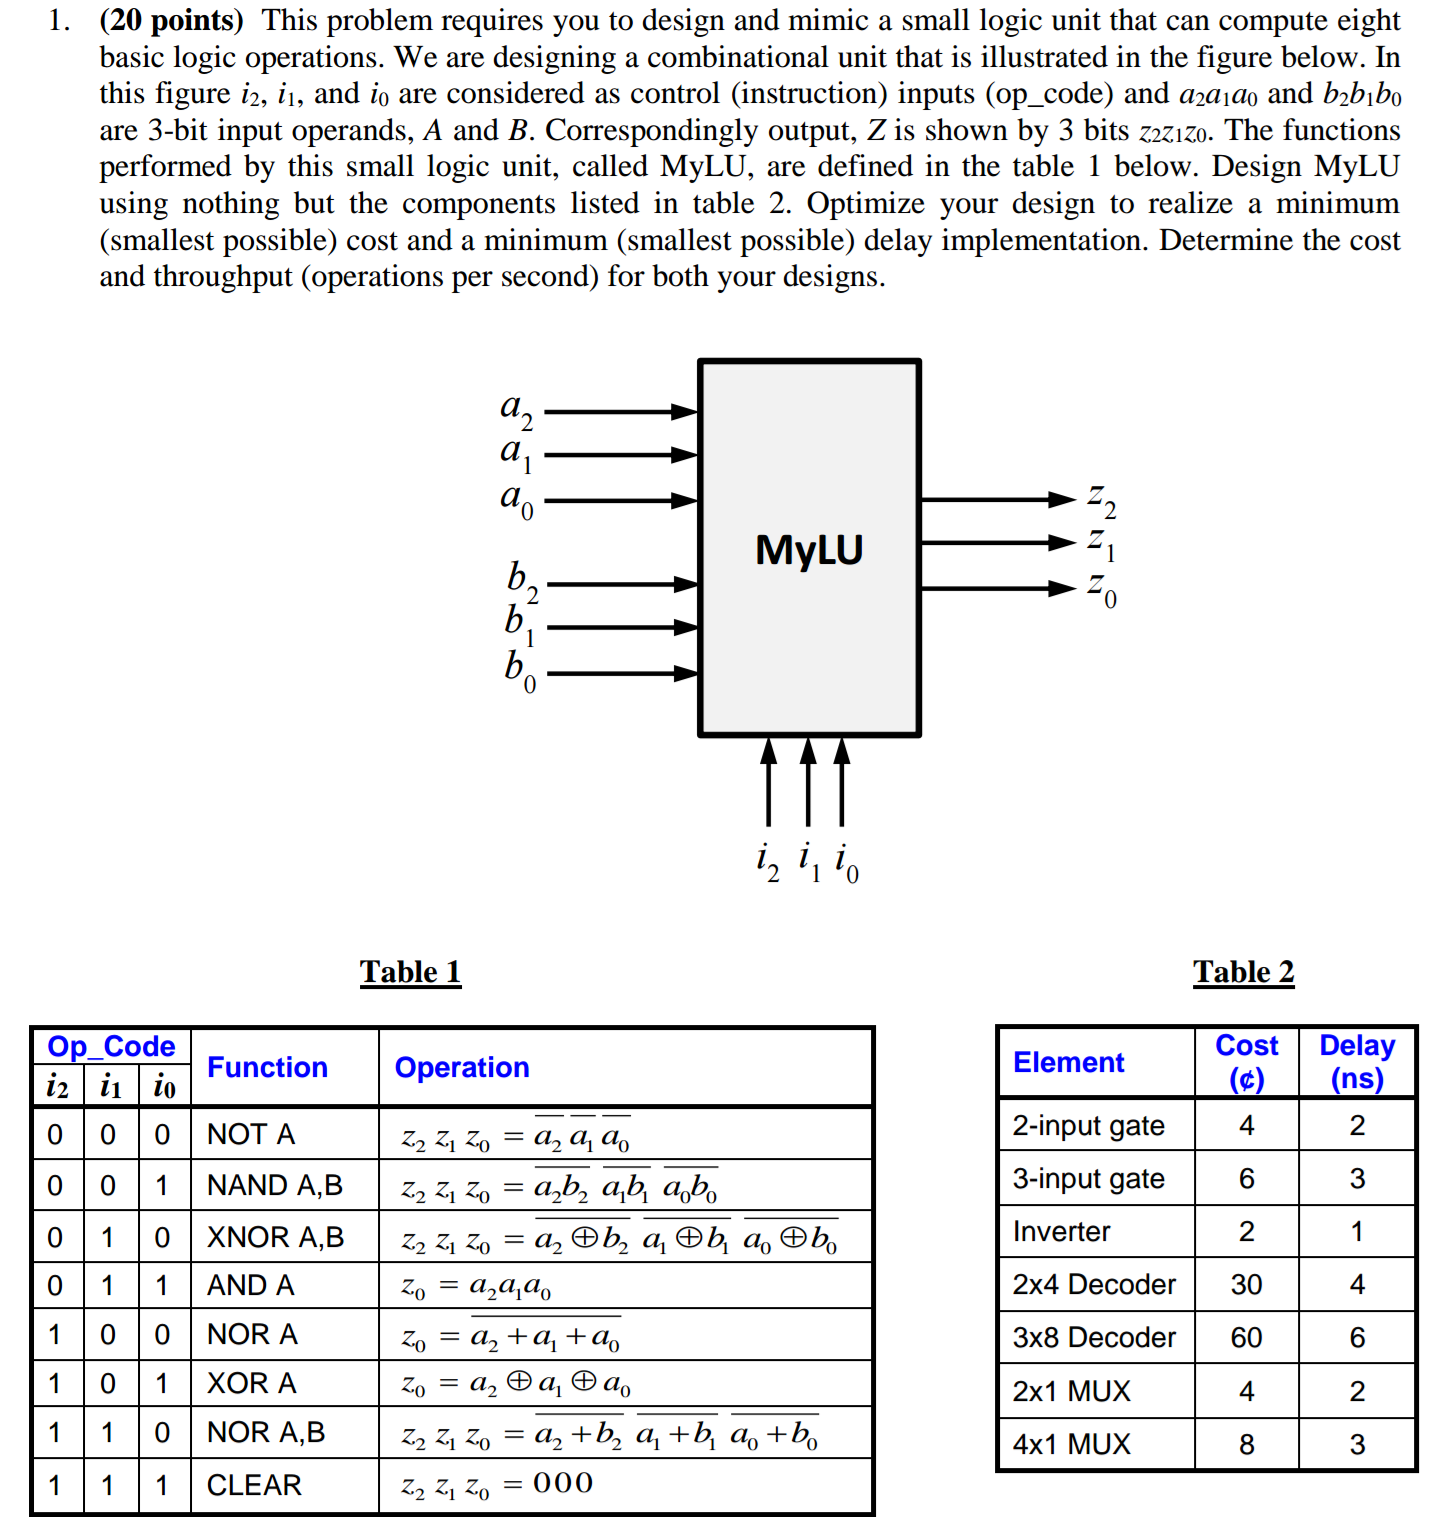 And Or Nand Nor Xor Xnor solved: design and mimic a small logic unit that cna compu